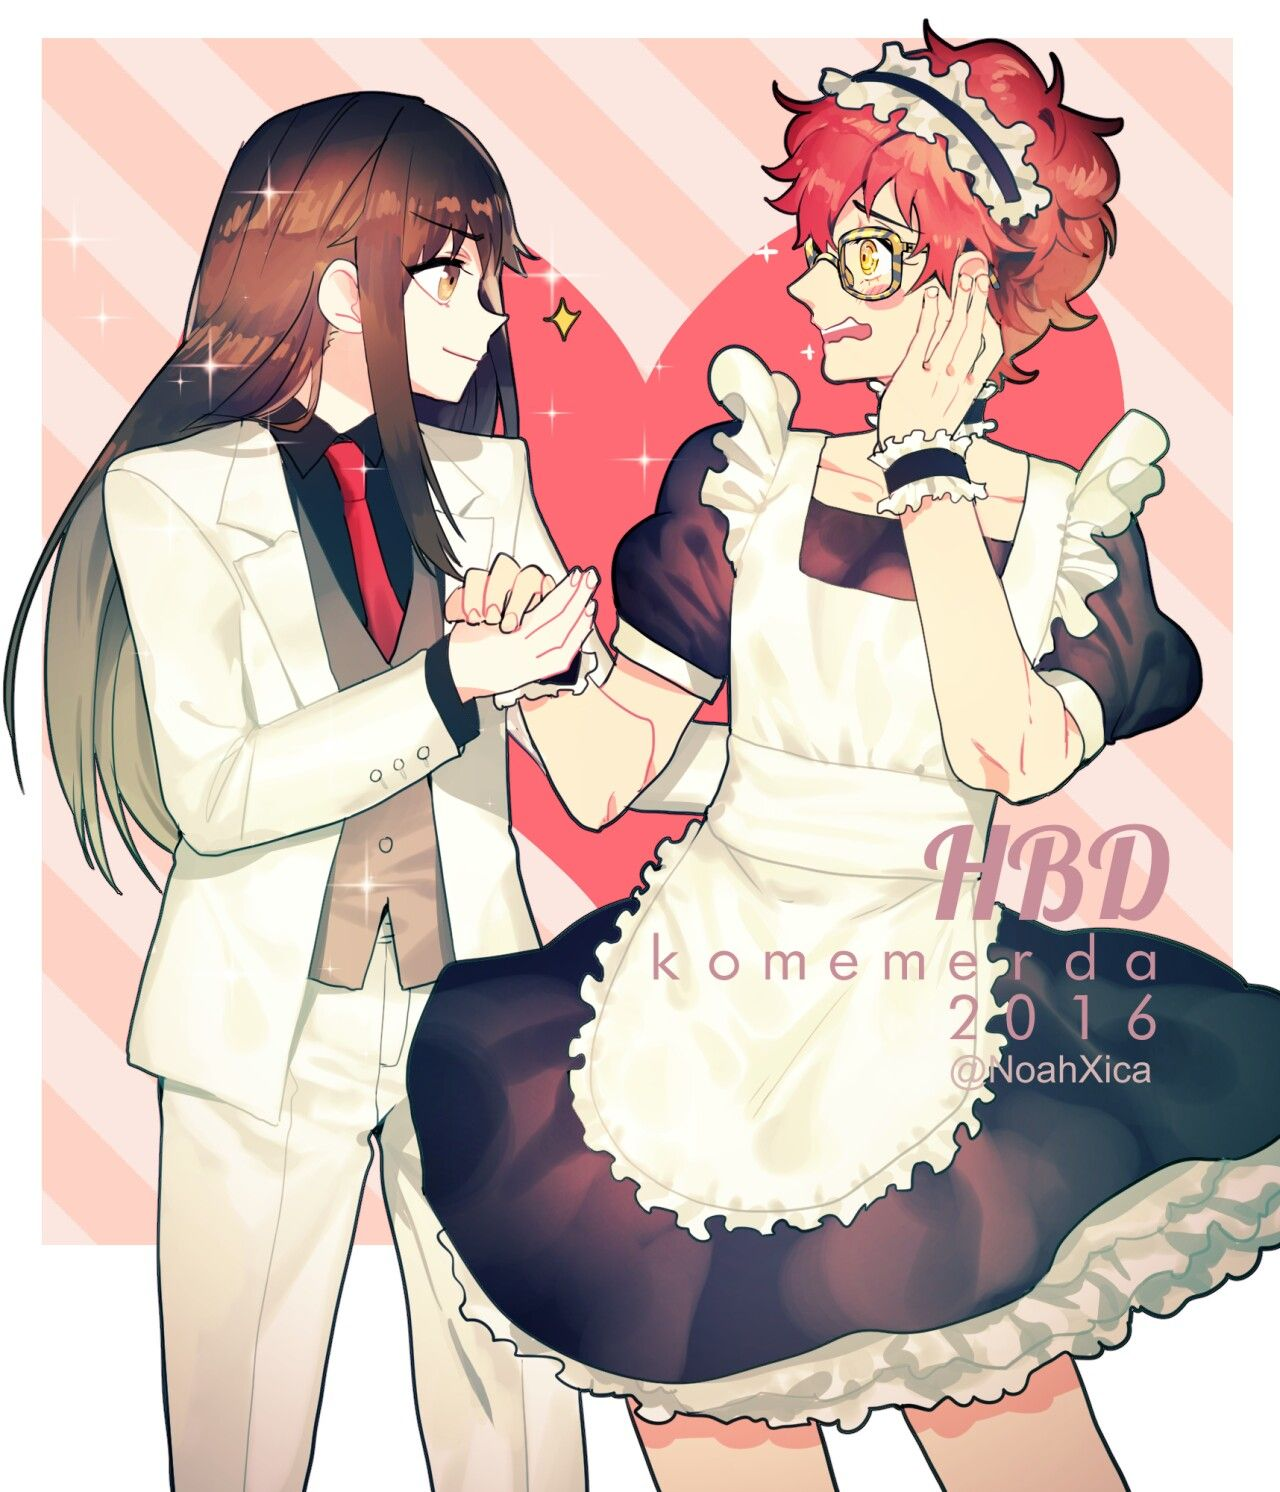 I NEED 707 TO BE MY MAID AND BOYFRIEND